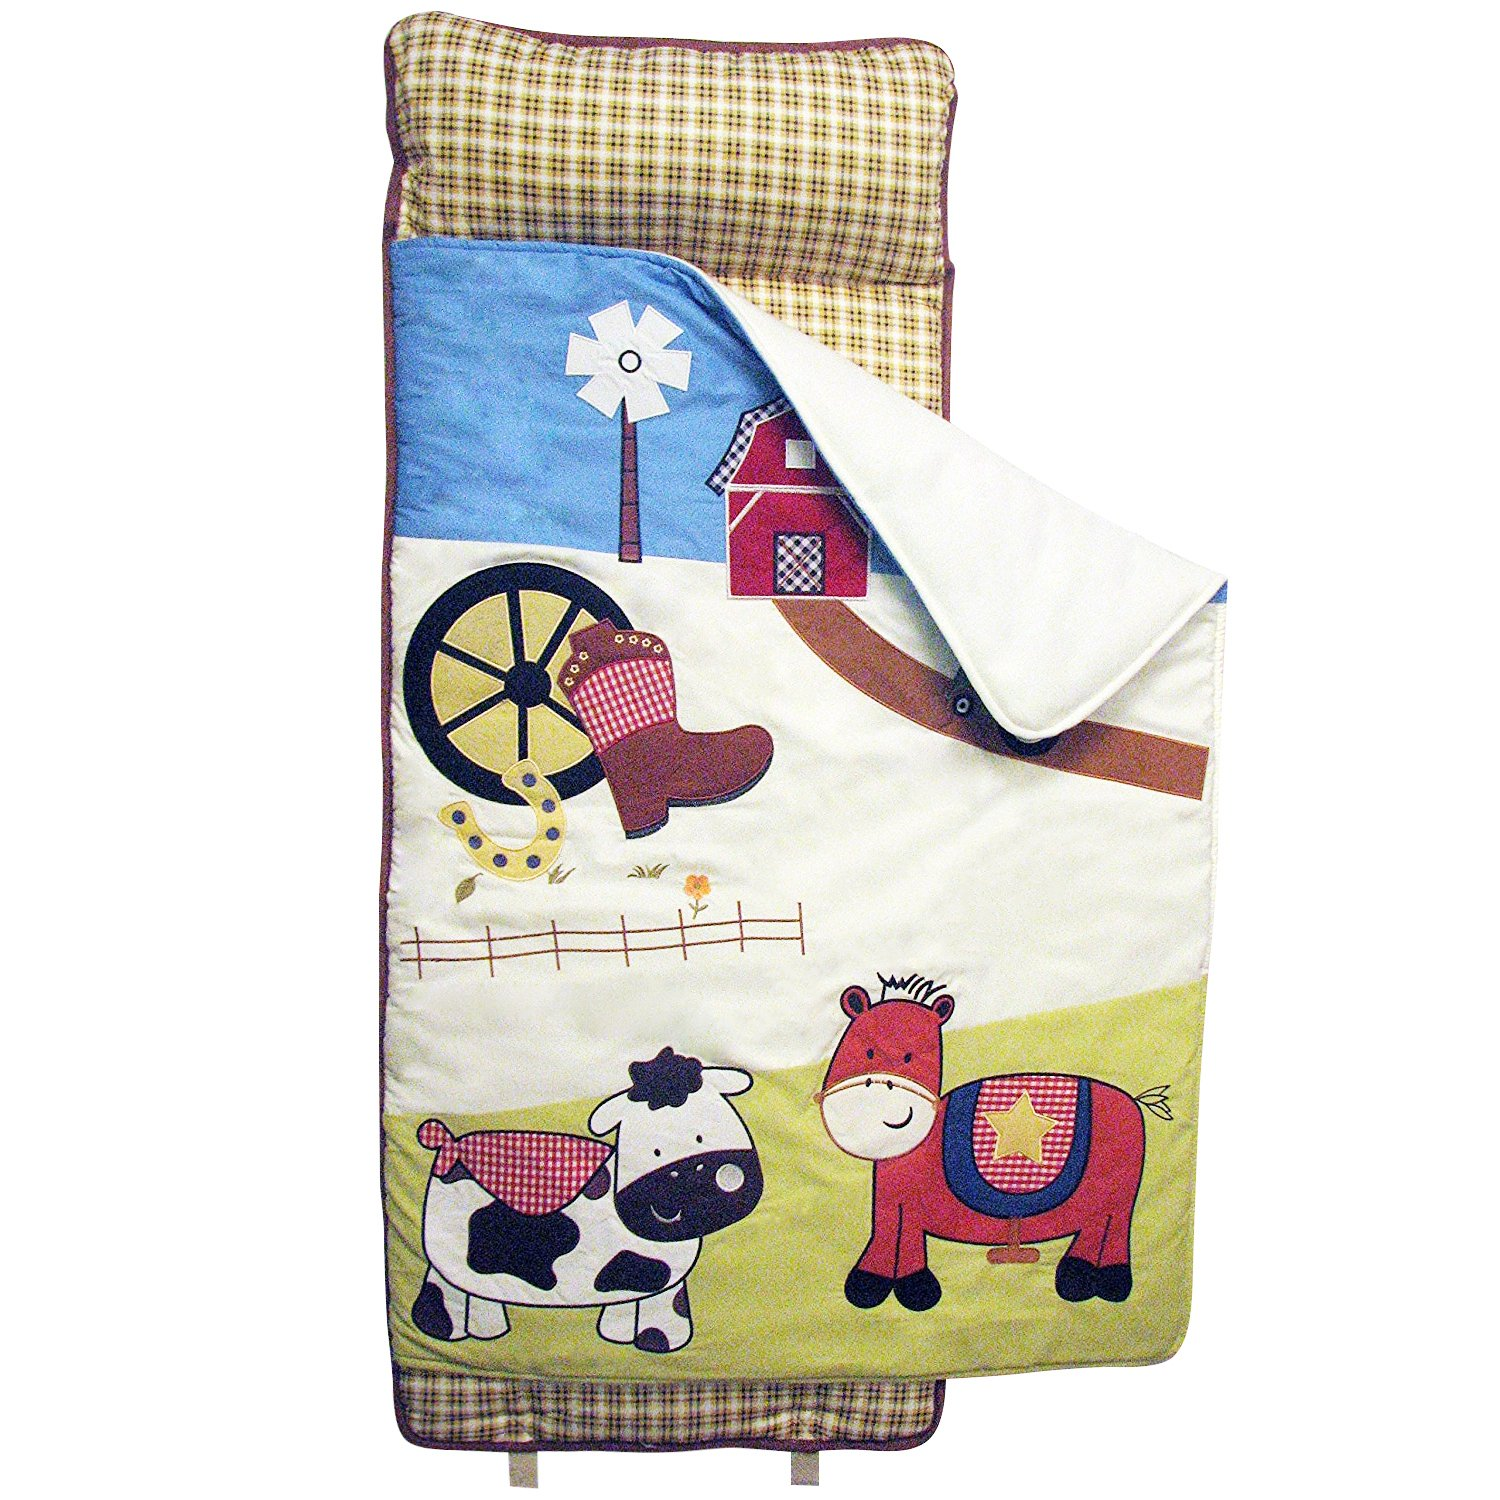 SoHo Nap Mat , Farmland Ranch (All Hand Embroidery) by Ellie and Luke (Image #2)